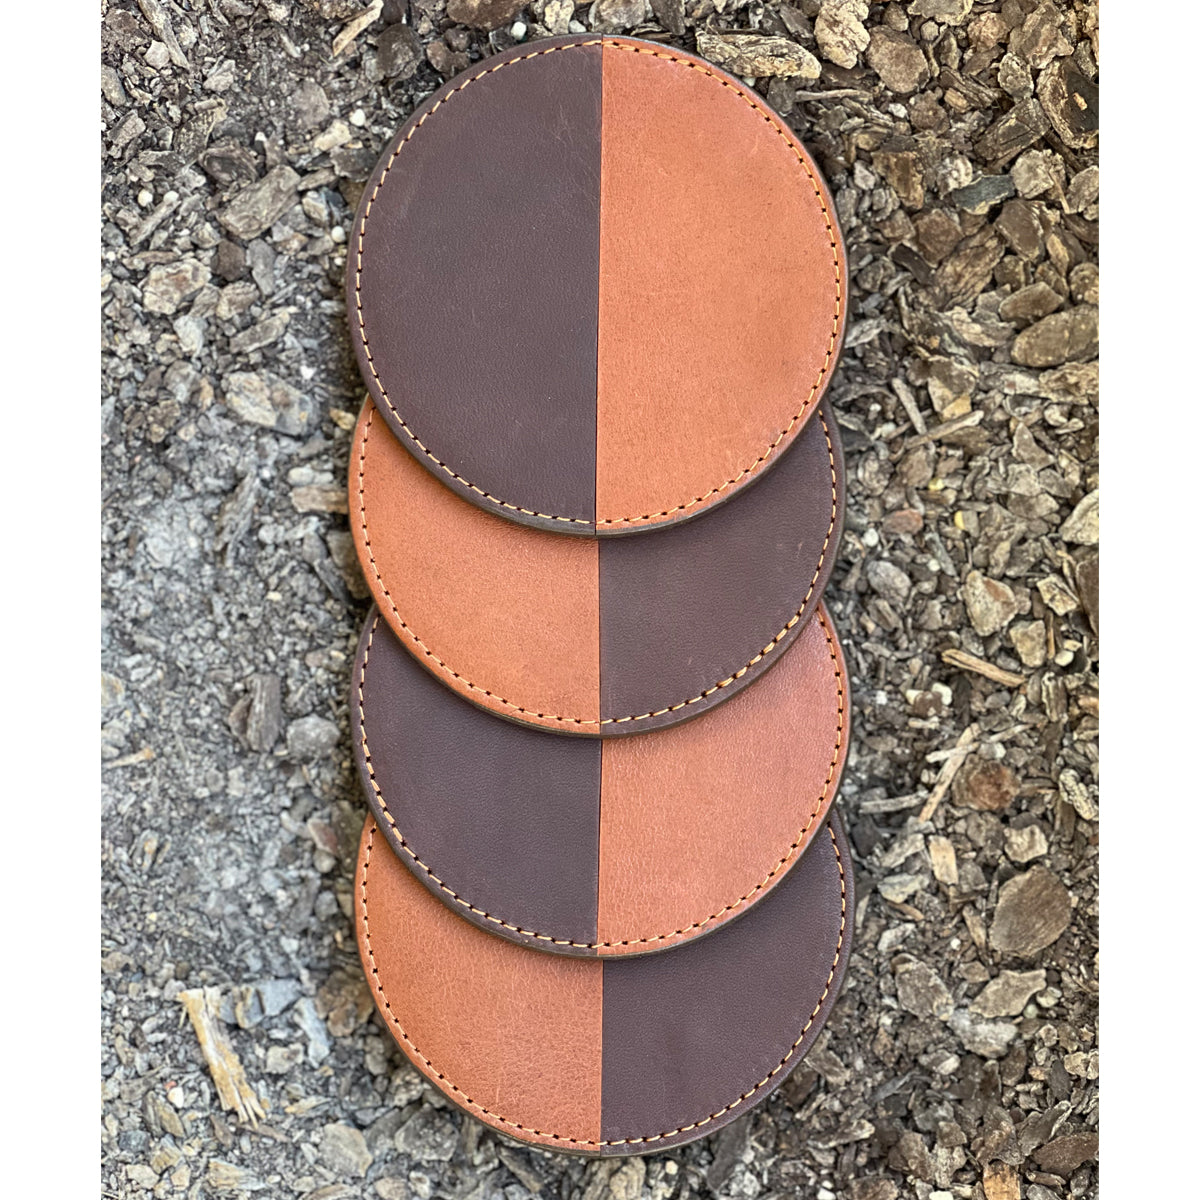 928 leather coasters